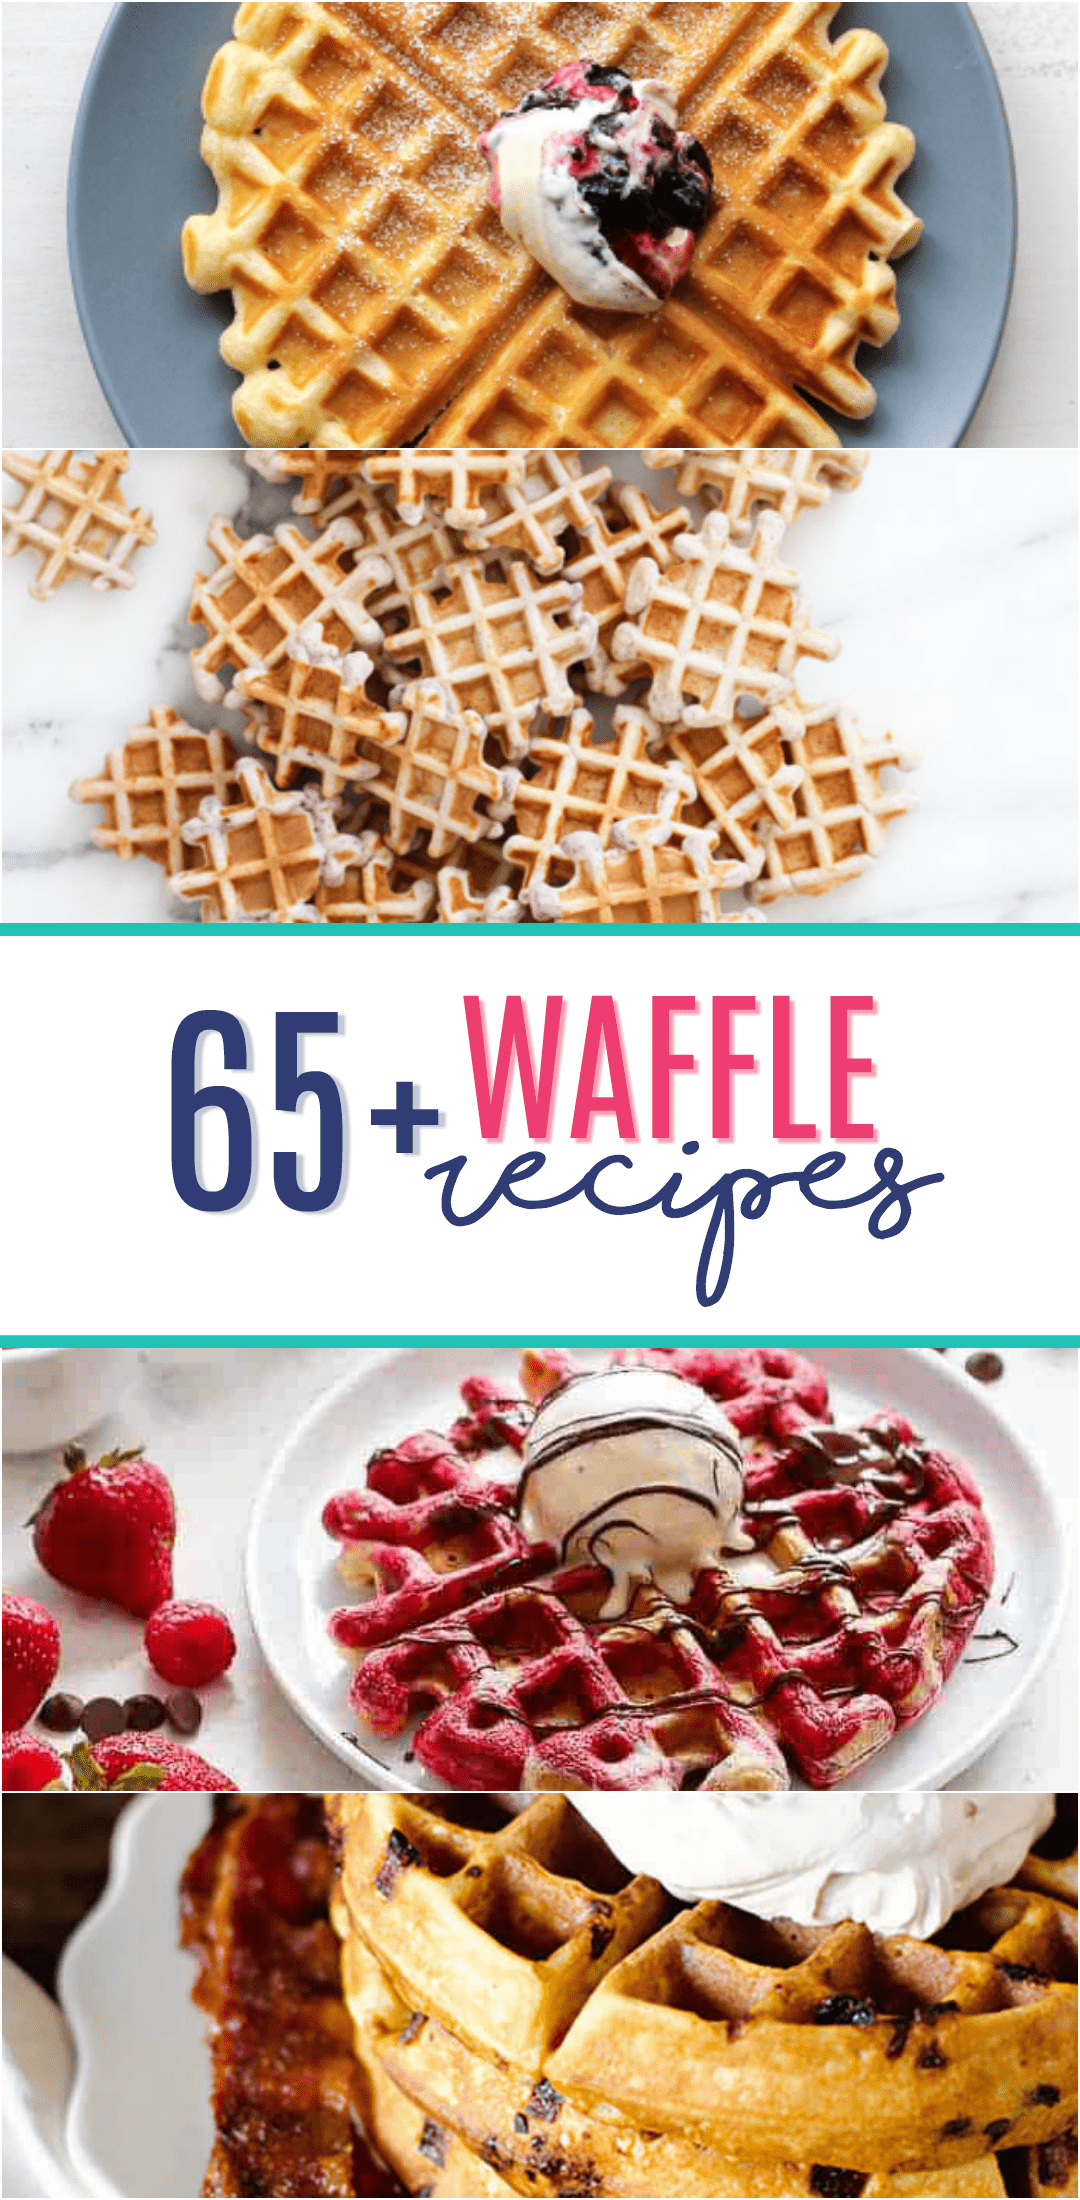 More than 65+ creative waffle recipes including Blueberry Muffin Waffles, Cinnamon Roll Waffles, Maple Bacon Waffles.